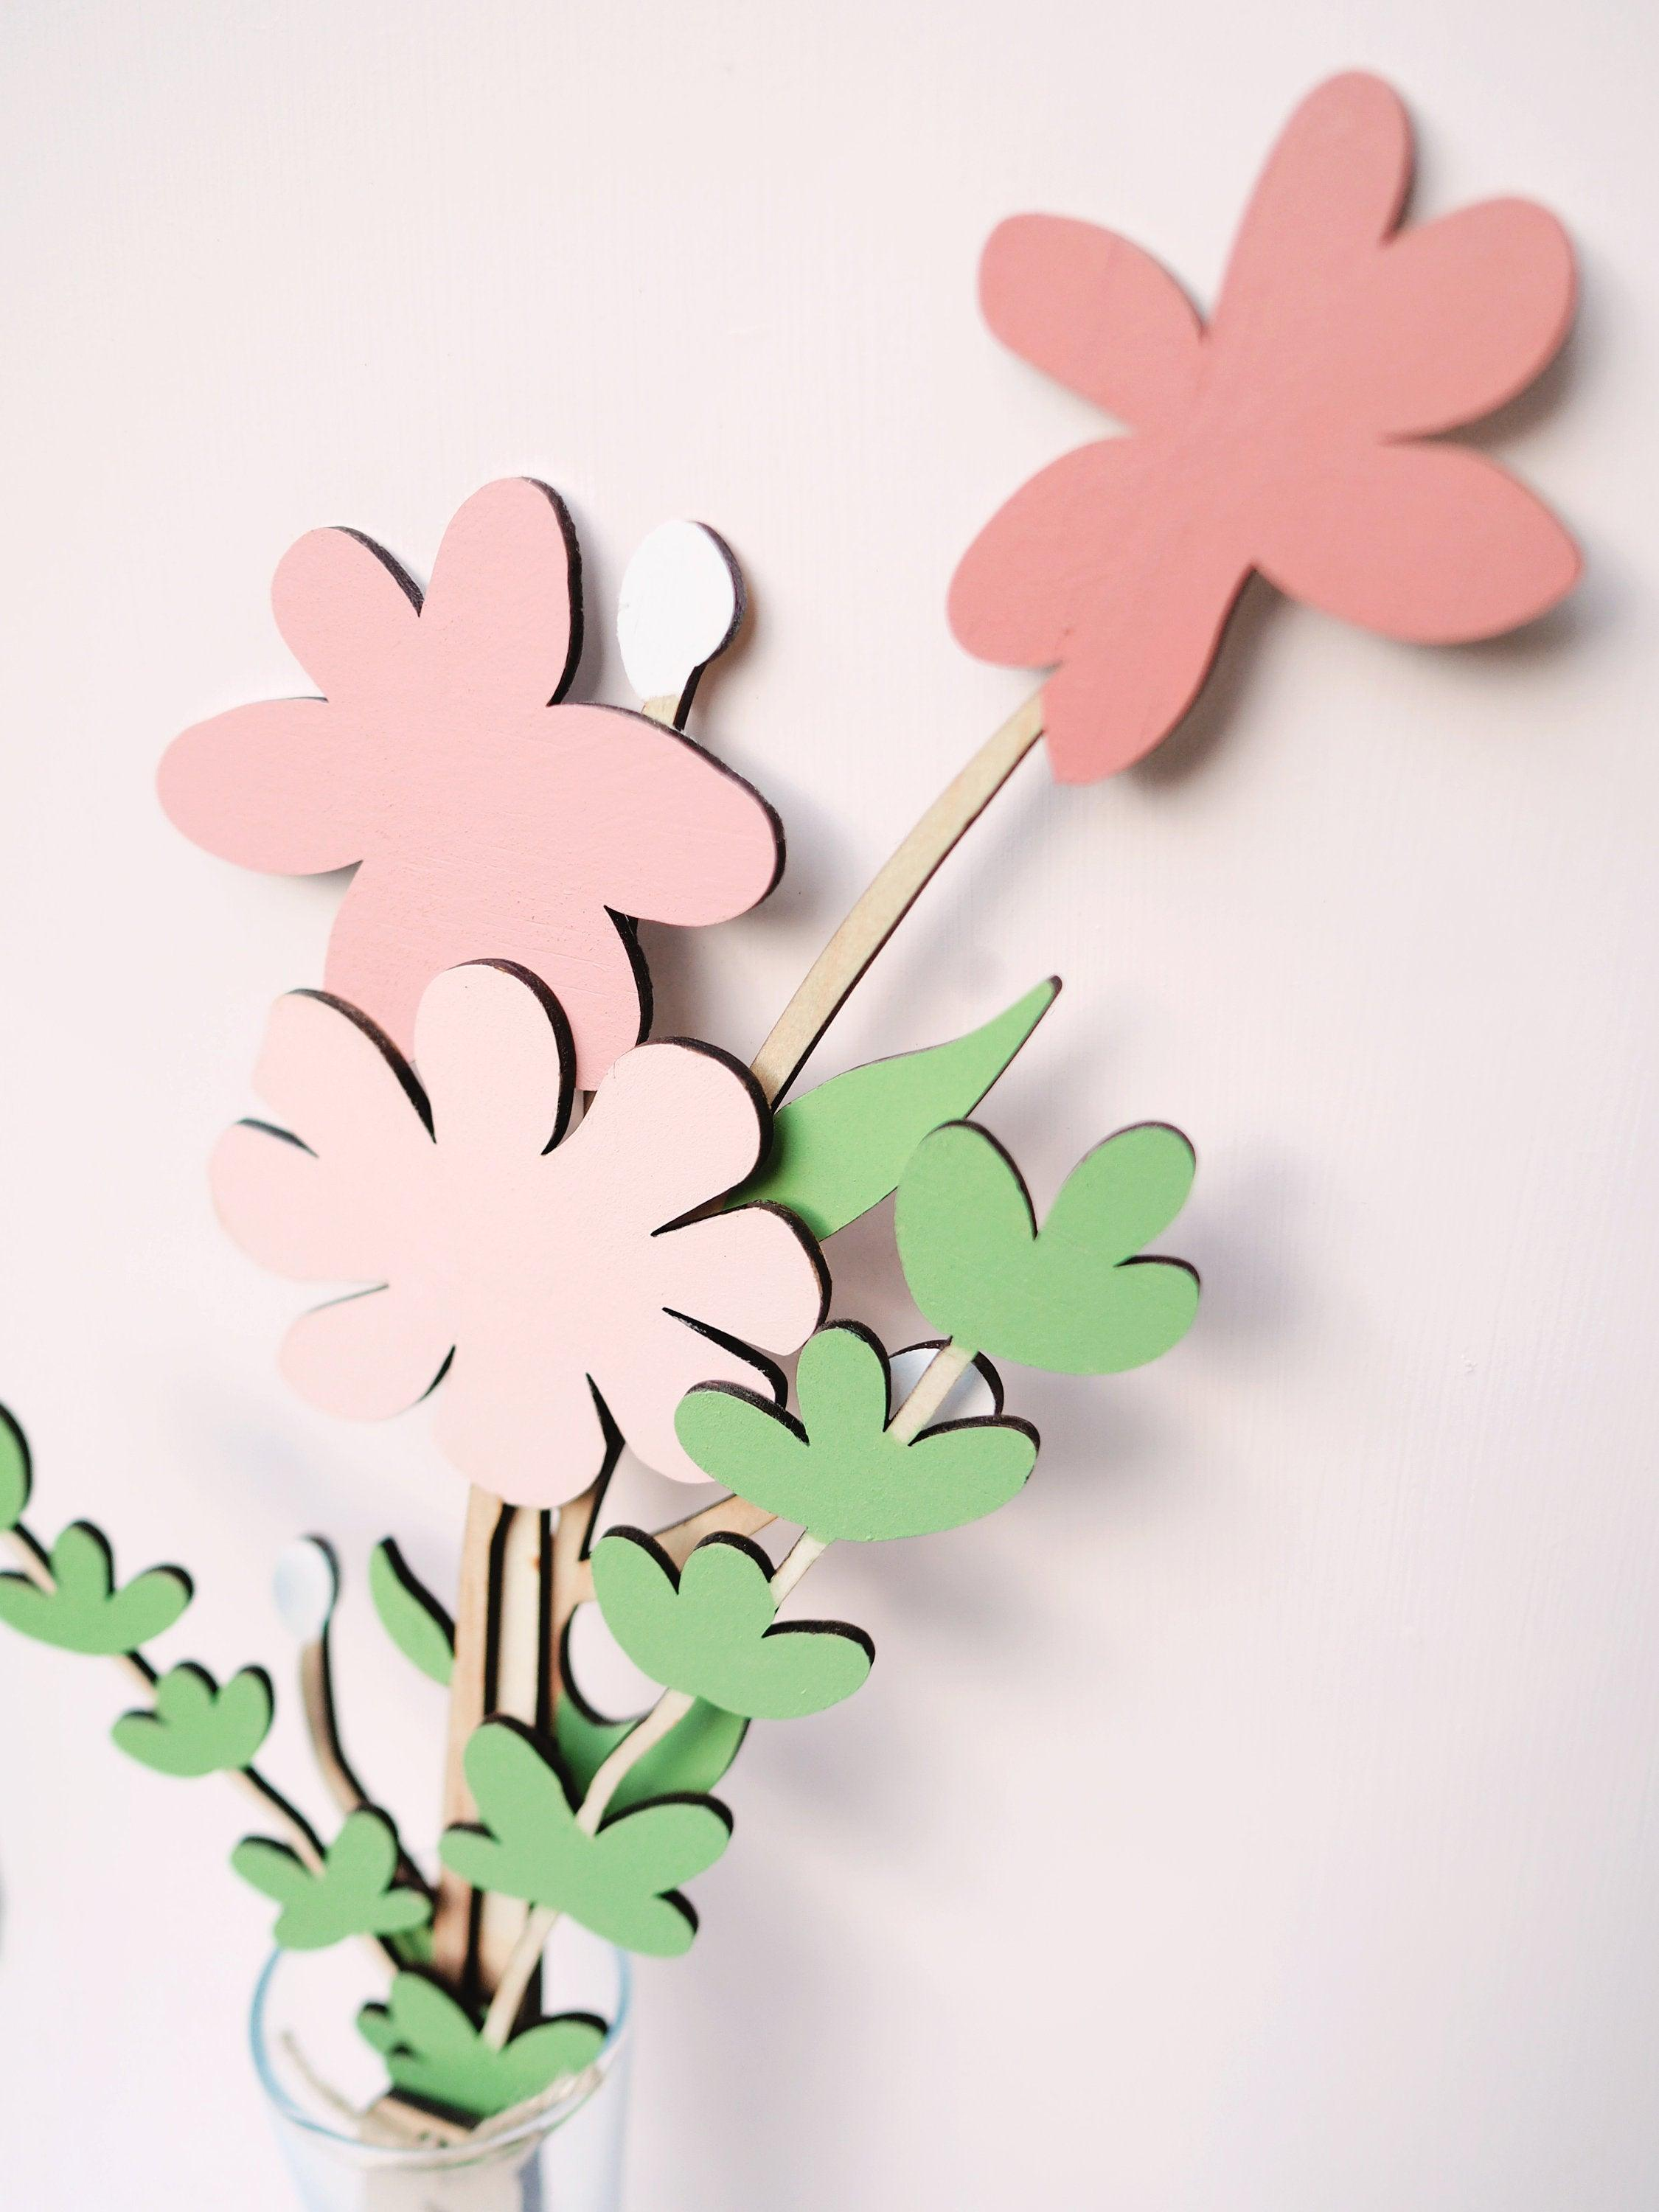 Wood Flowers for Mothers Day - Wooden Flower, Plywood Flowers, Wood flowers, Laser cut flowers, wood flower bouquet, laser cut wood